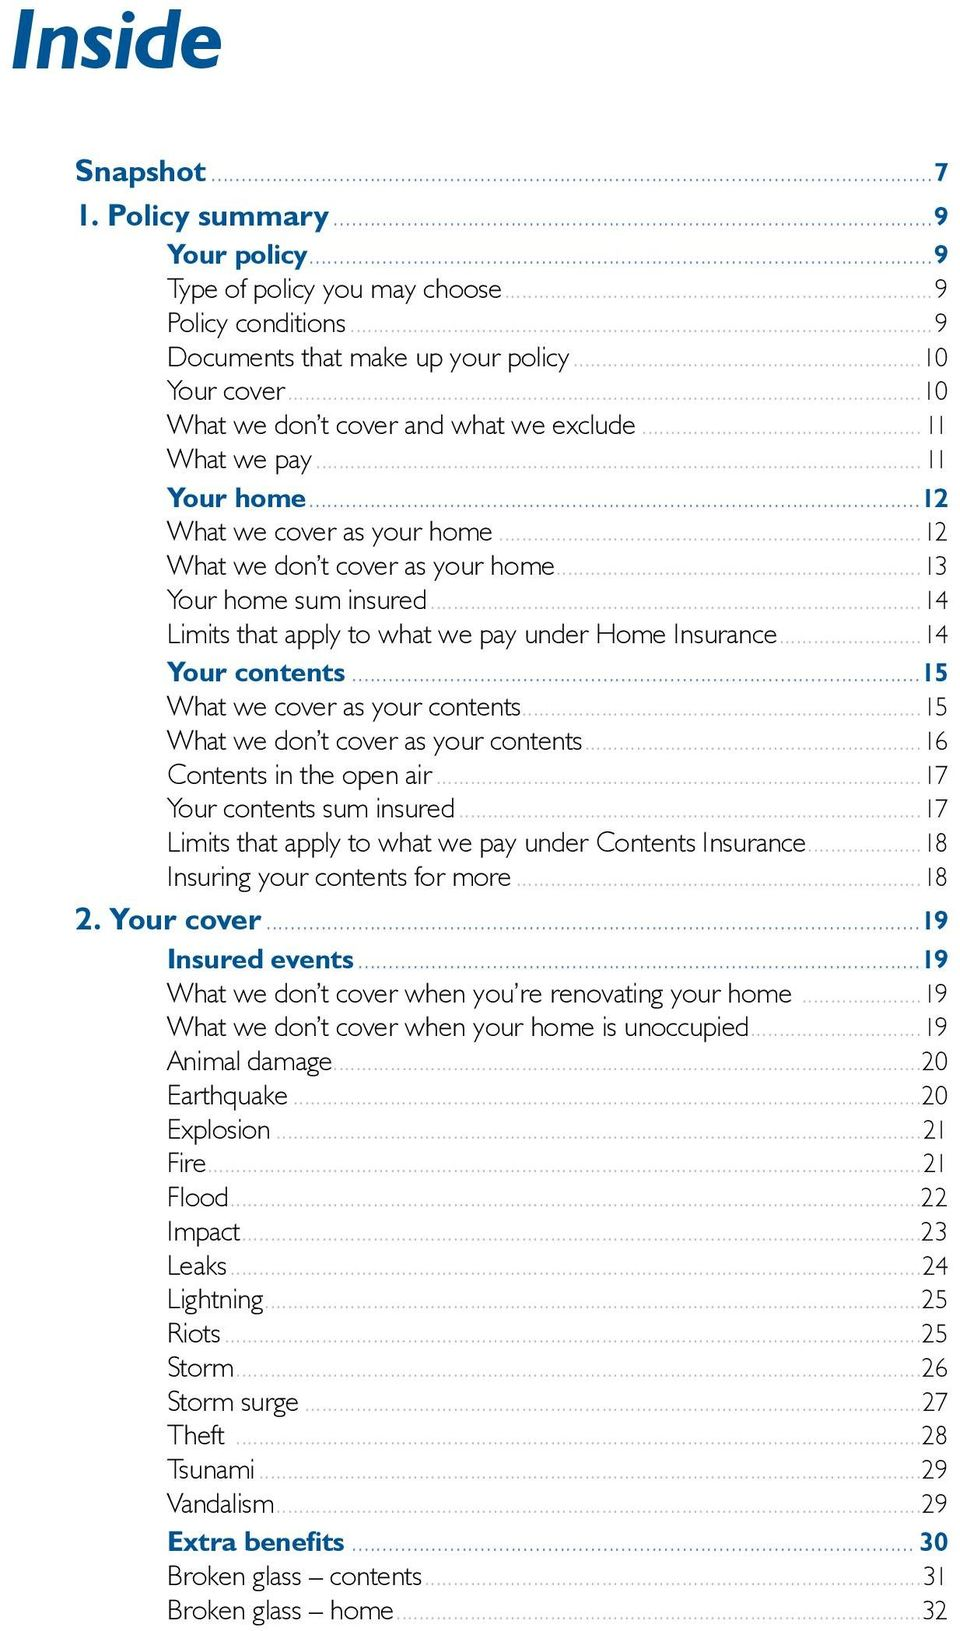 ..14 Limits that apply to what we pay under Home Insurance...14 Your contents...15 What we cover as your contents...15 What we don t cover as your contents...16 Contents in the open air.